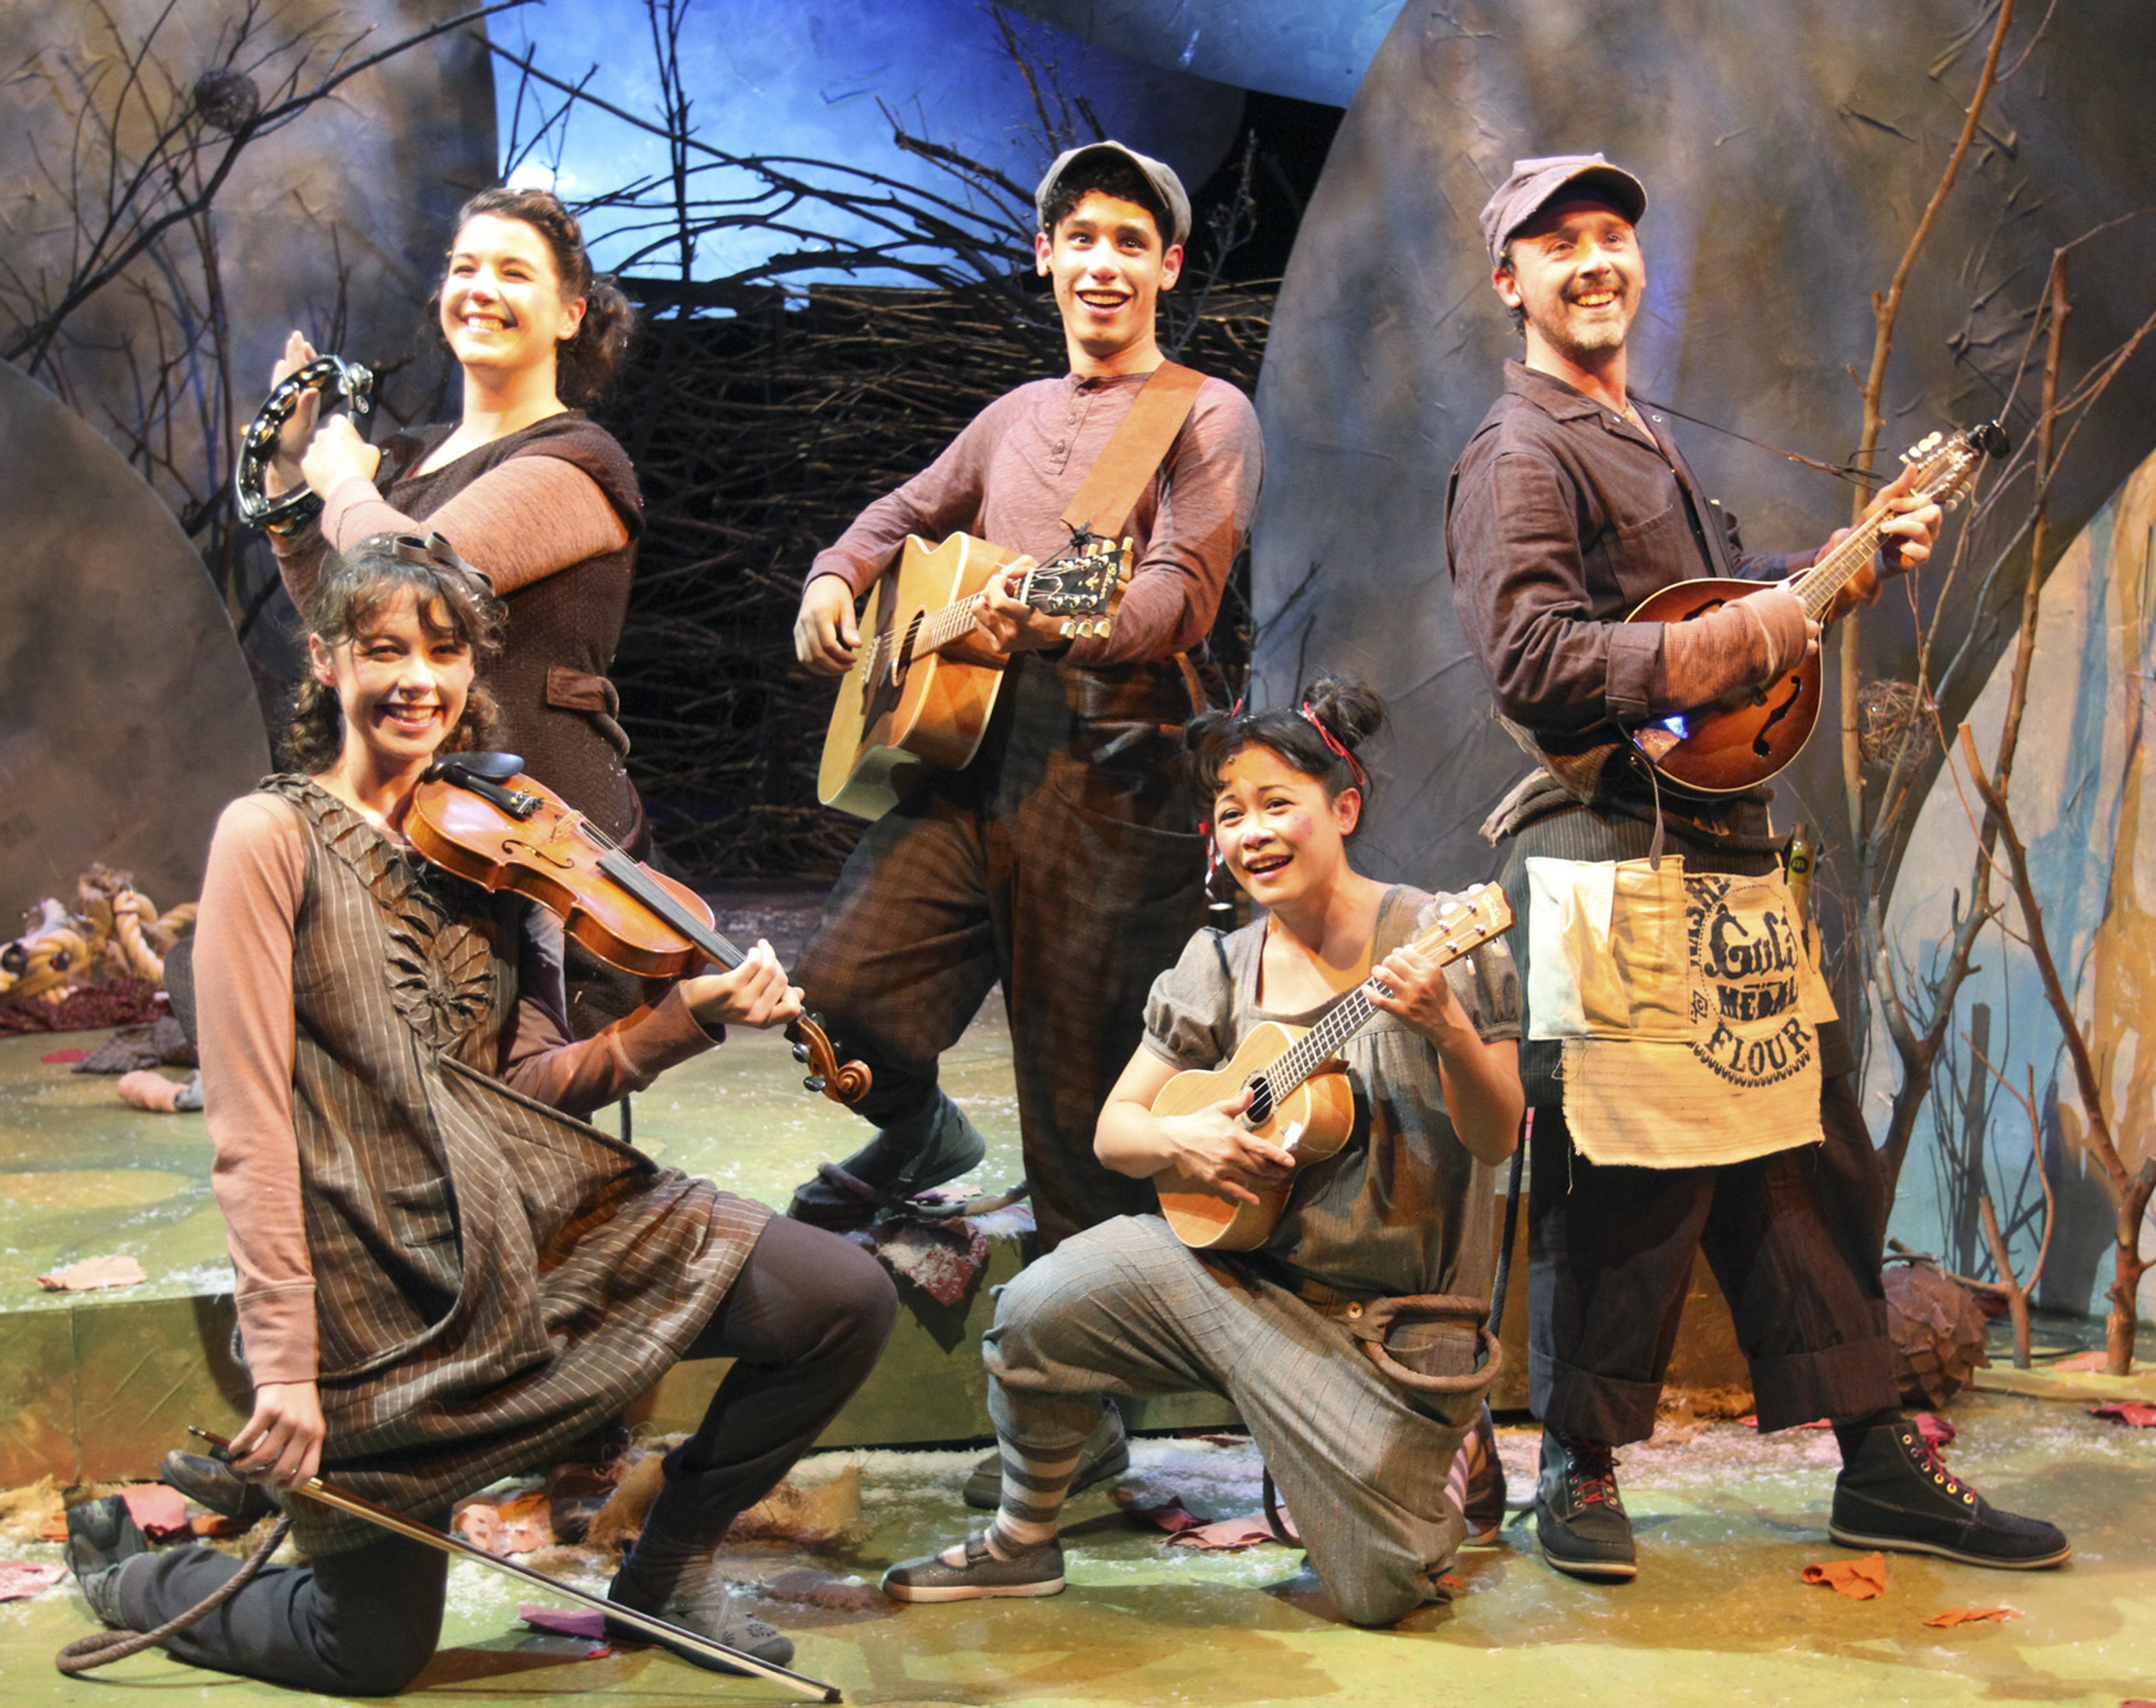 Autism-friendly performance of Leo Lionni's 'Frederick' demonstrate Chicago Children's Theatre's commitment to access